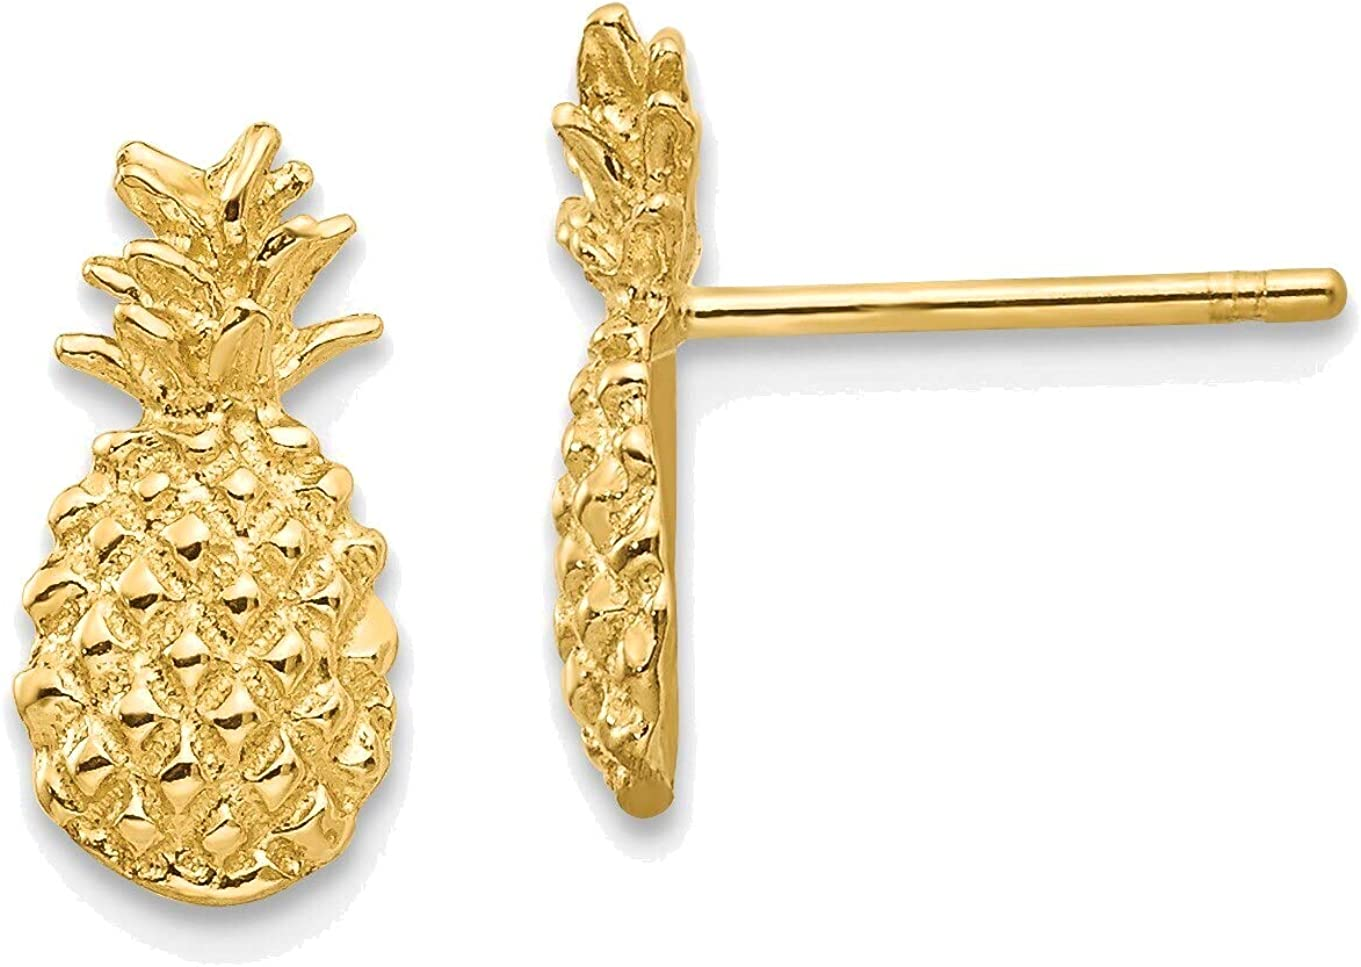 Polished and Textured Pineapple Post Earrings in 14K Yellow Gold